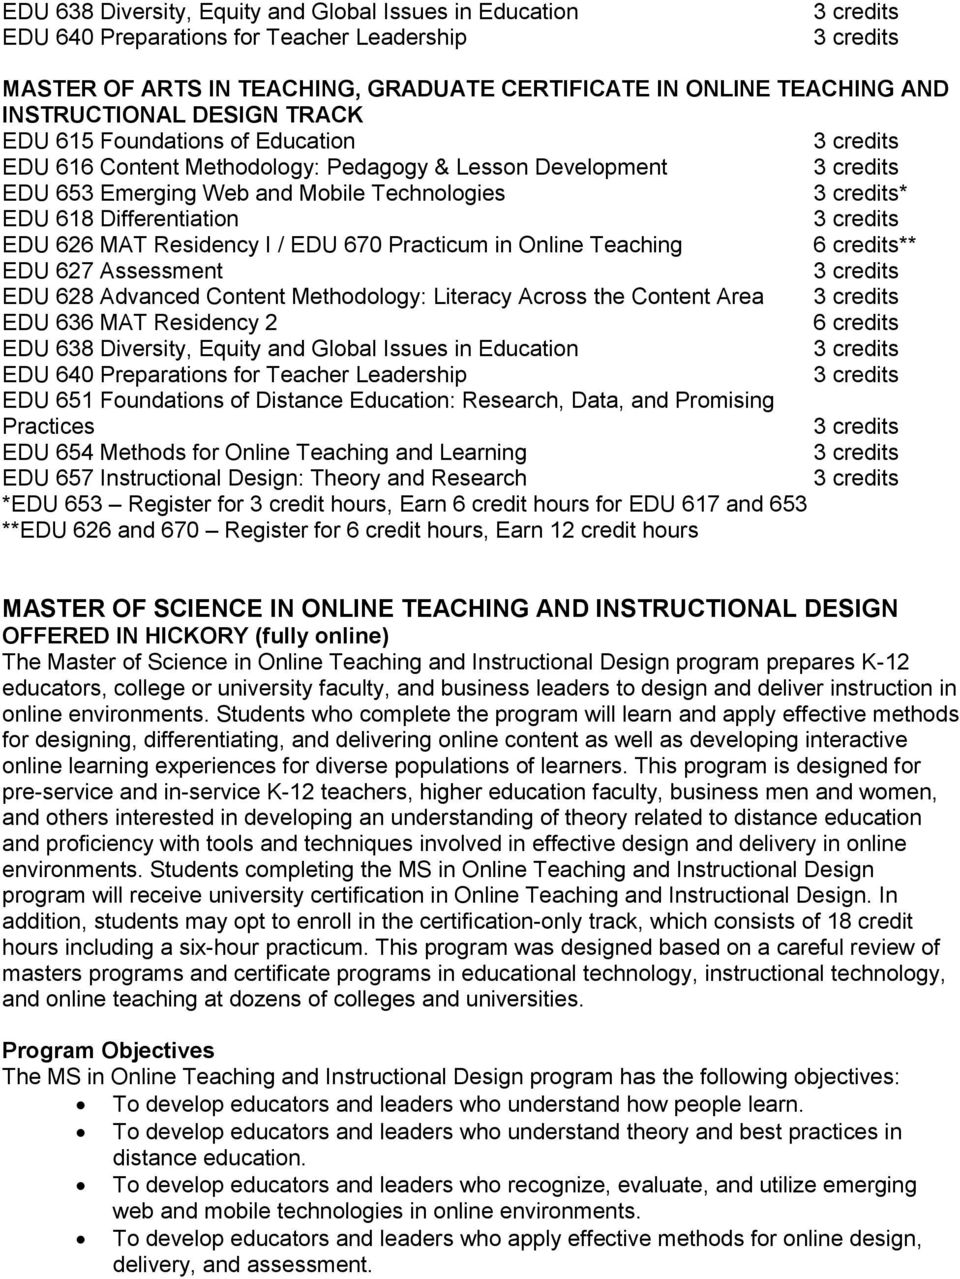 Practicum in Online Teaching 6 credits** EDU 627 Assessment EDU 628 Advanced Content Methodology: Literacy Across the Content Area EDU 636 MAT Residency 2 6 credits EDU 638 Diversity, Equity and